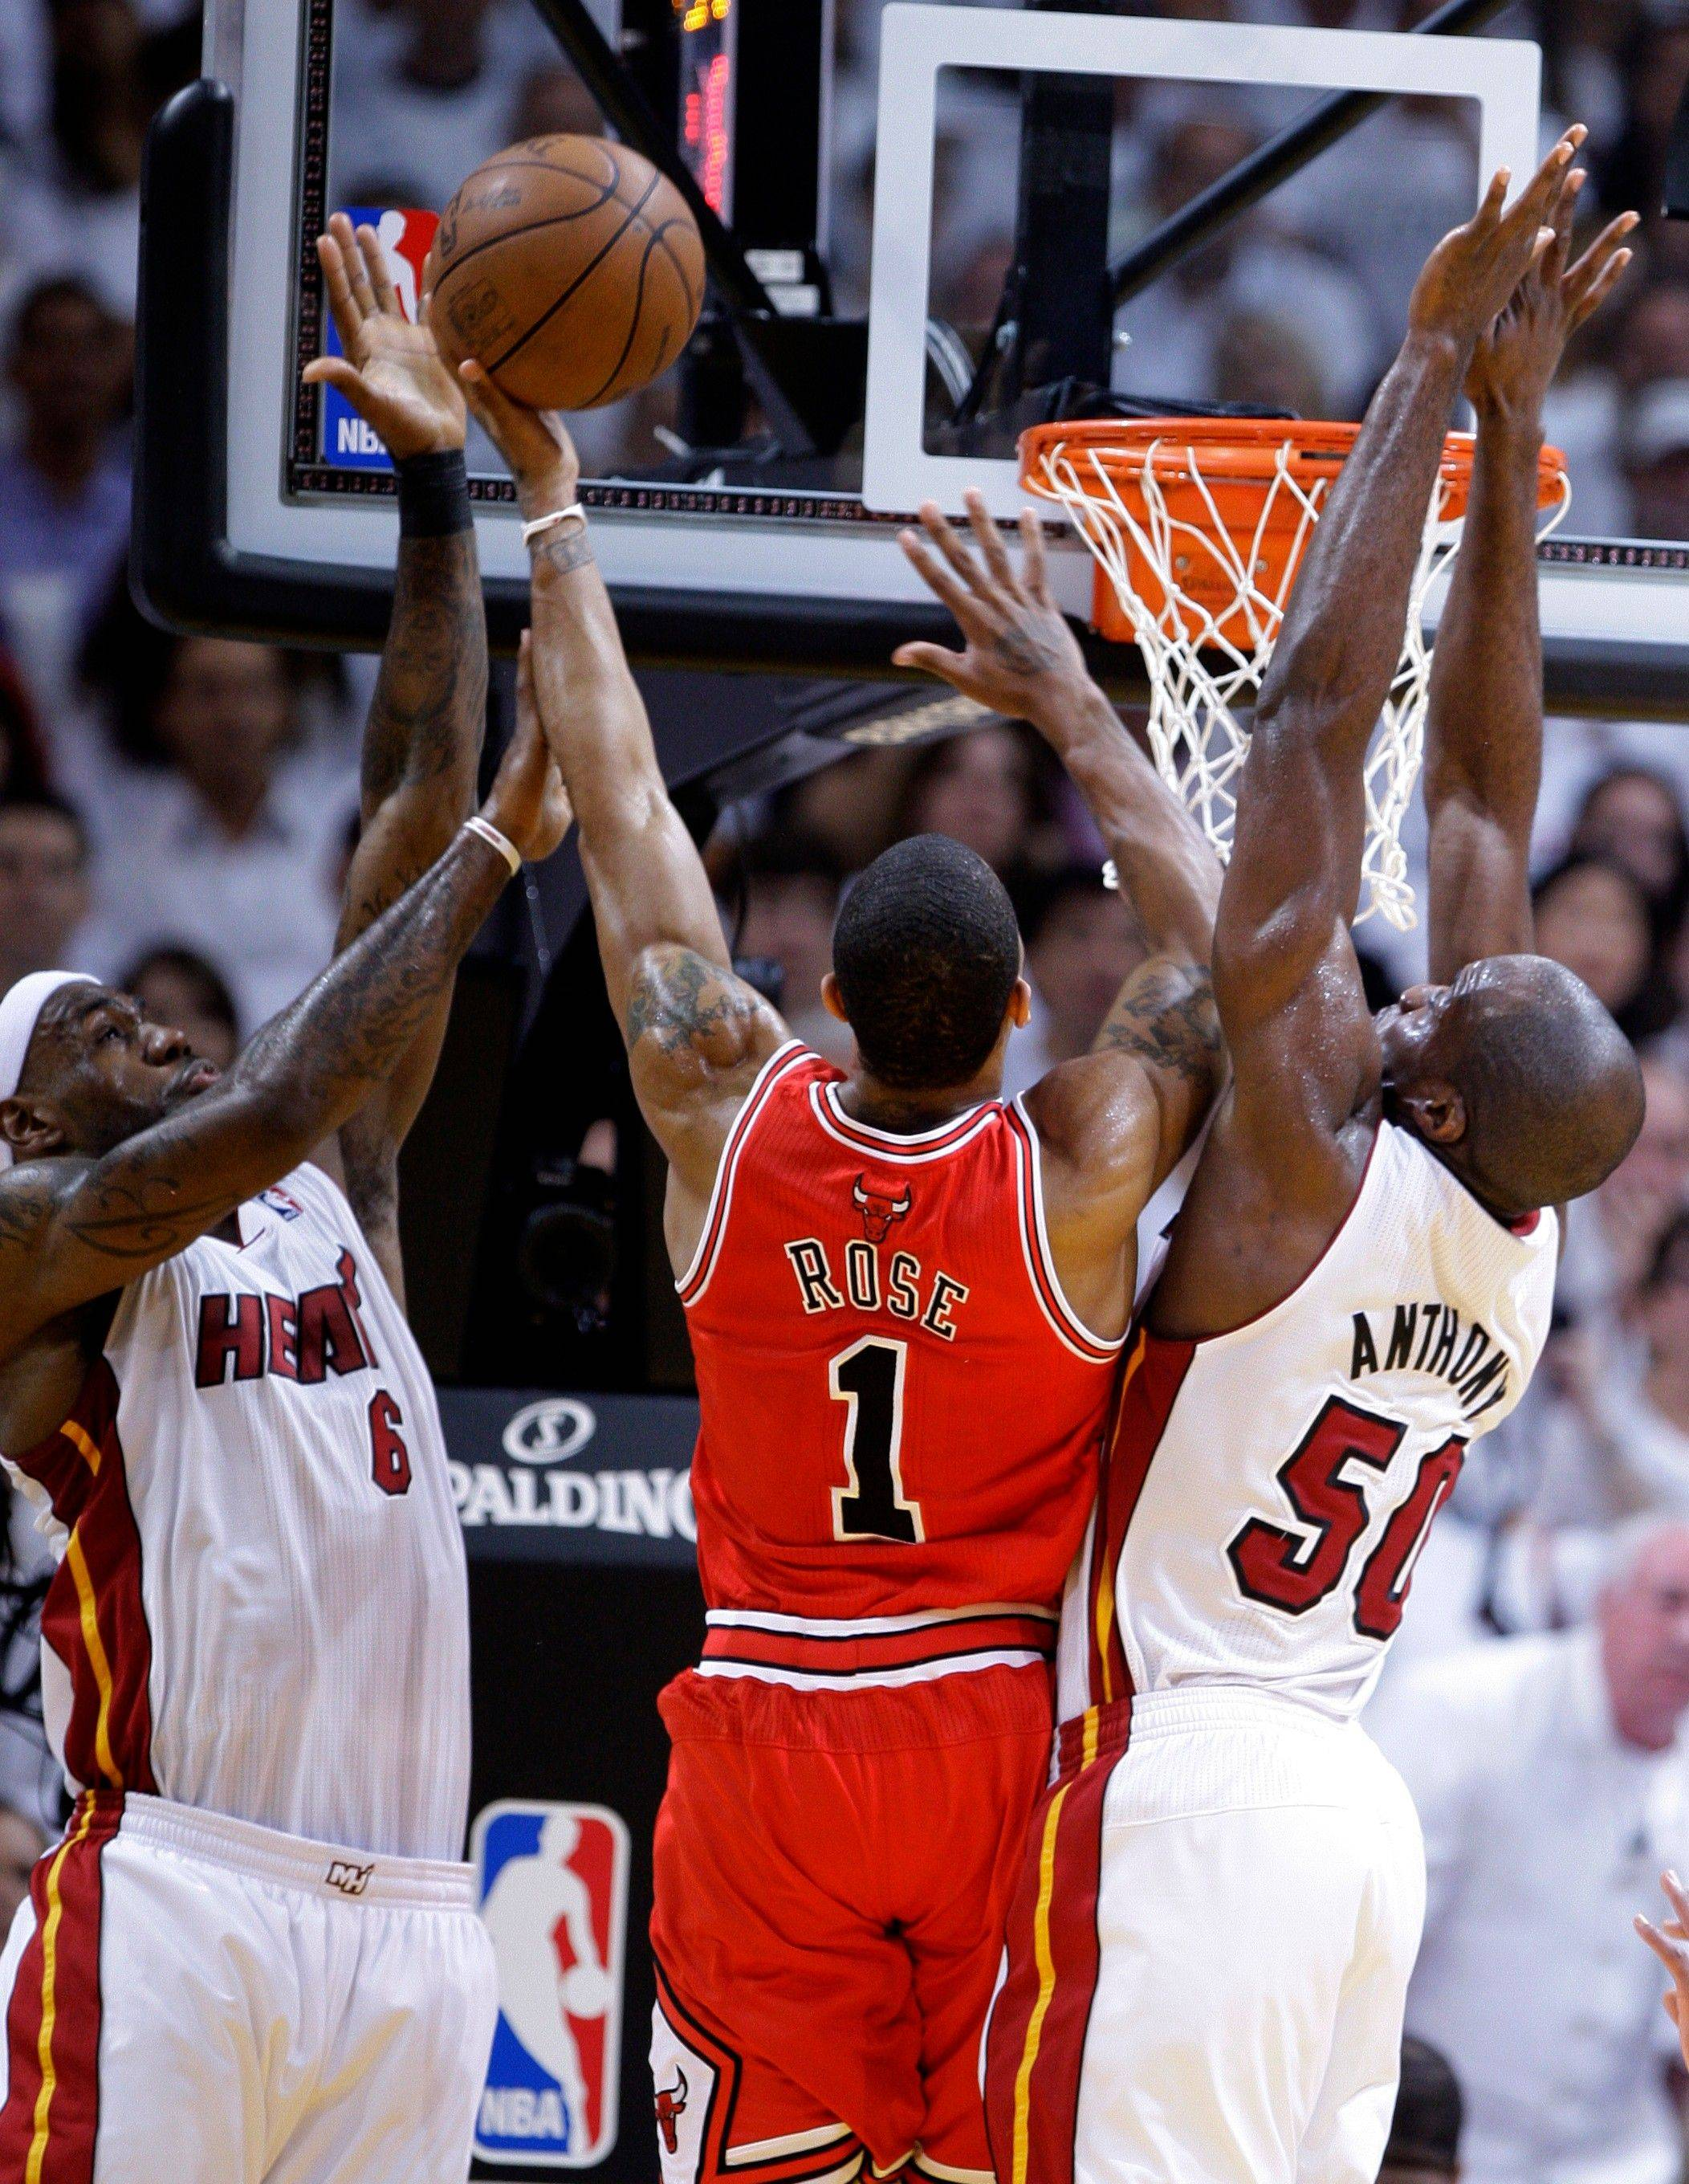 Miami Heat's LeBron James (6) and Joel Anthony (50) stop Derrick Rose's drive to the basket during the first half of Game 3 of the NBA Eastern Conference finals basketball series in Miami, Sunday, May 22, 2011.